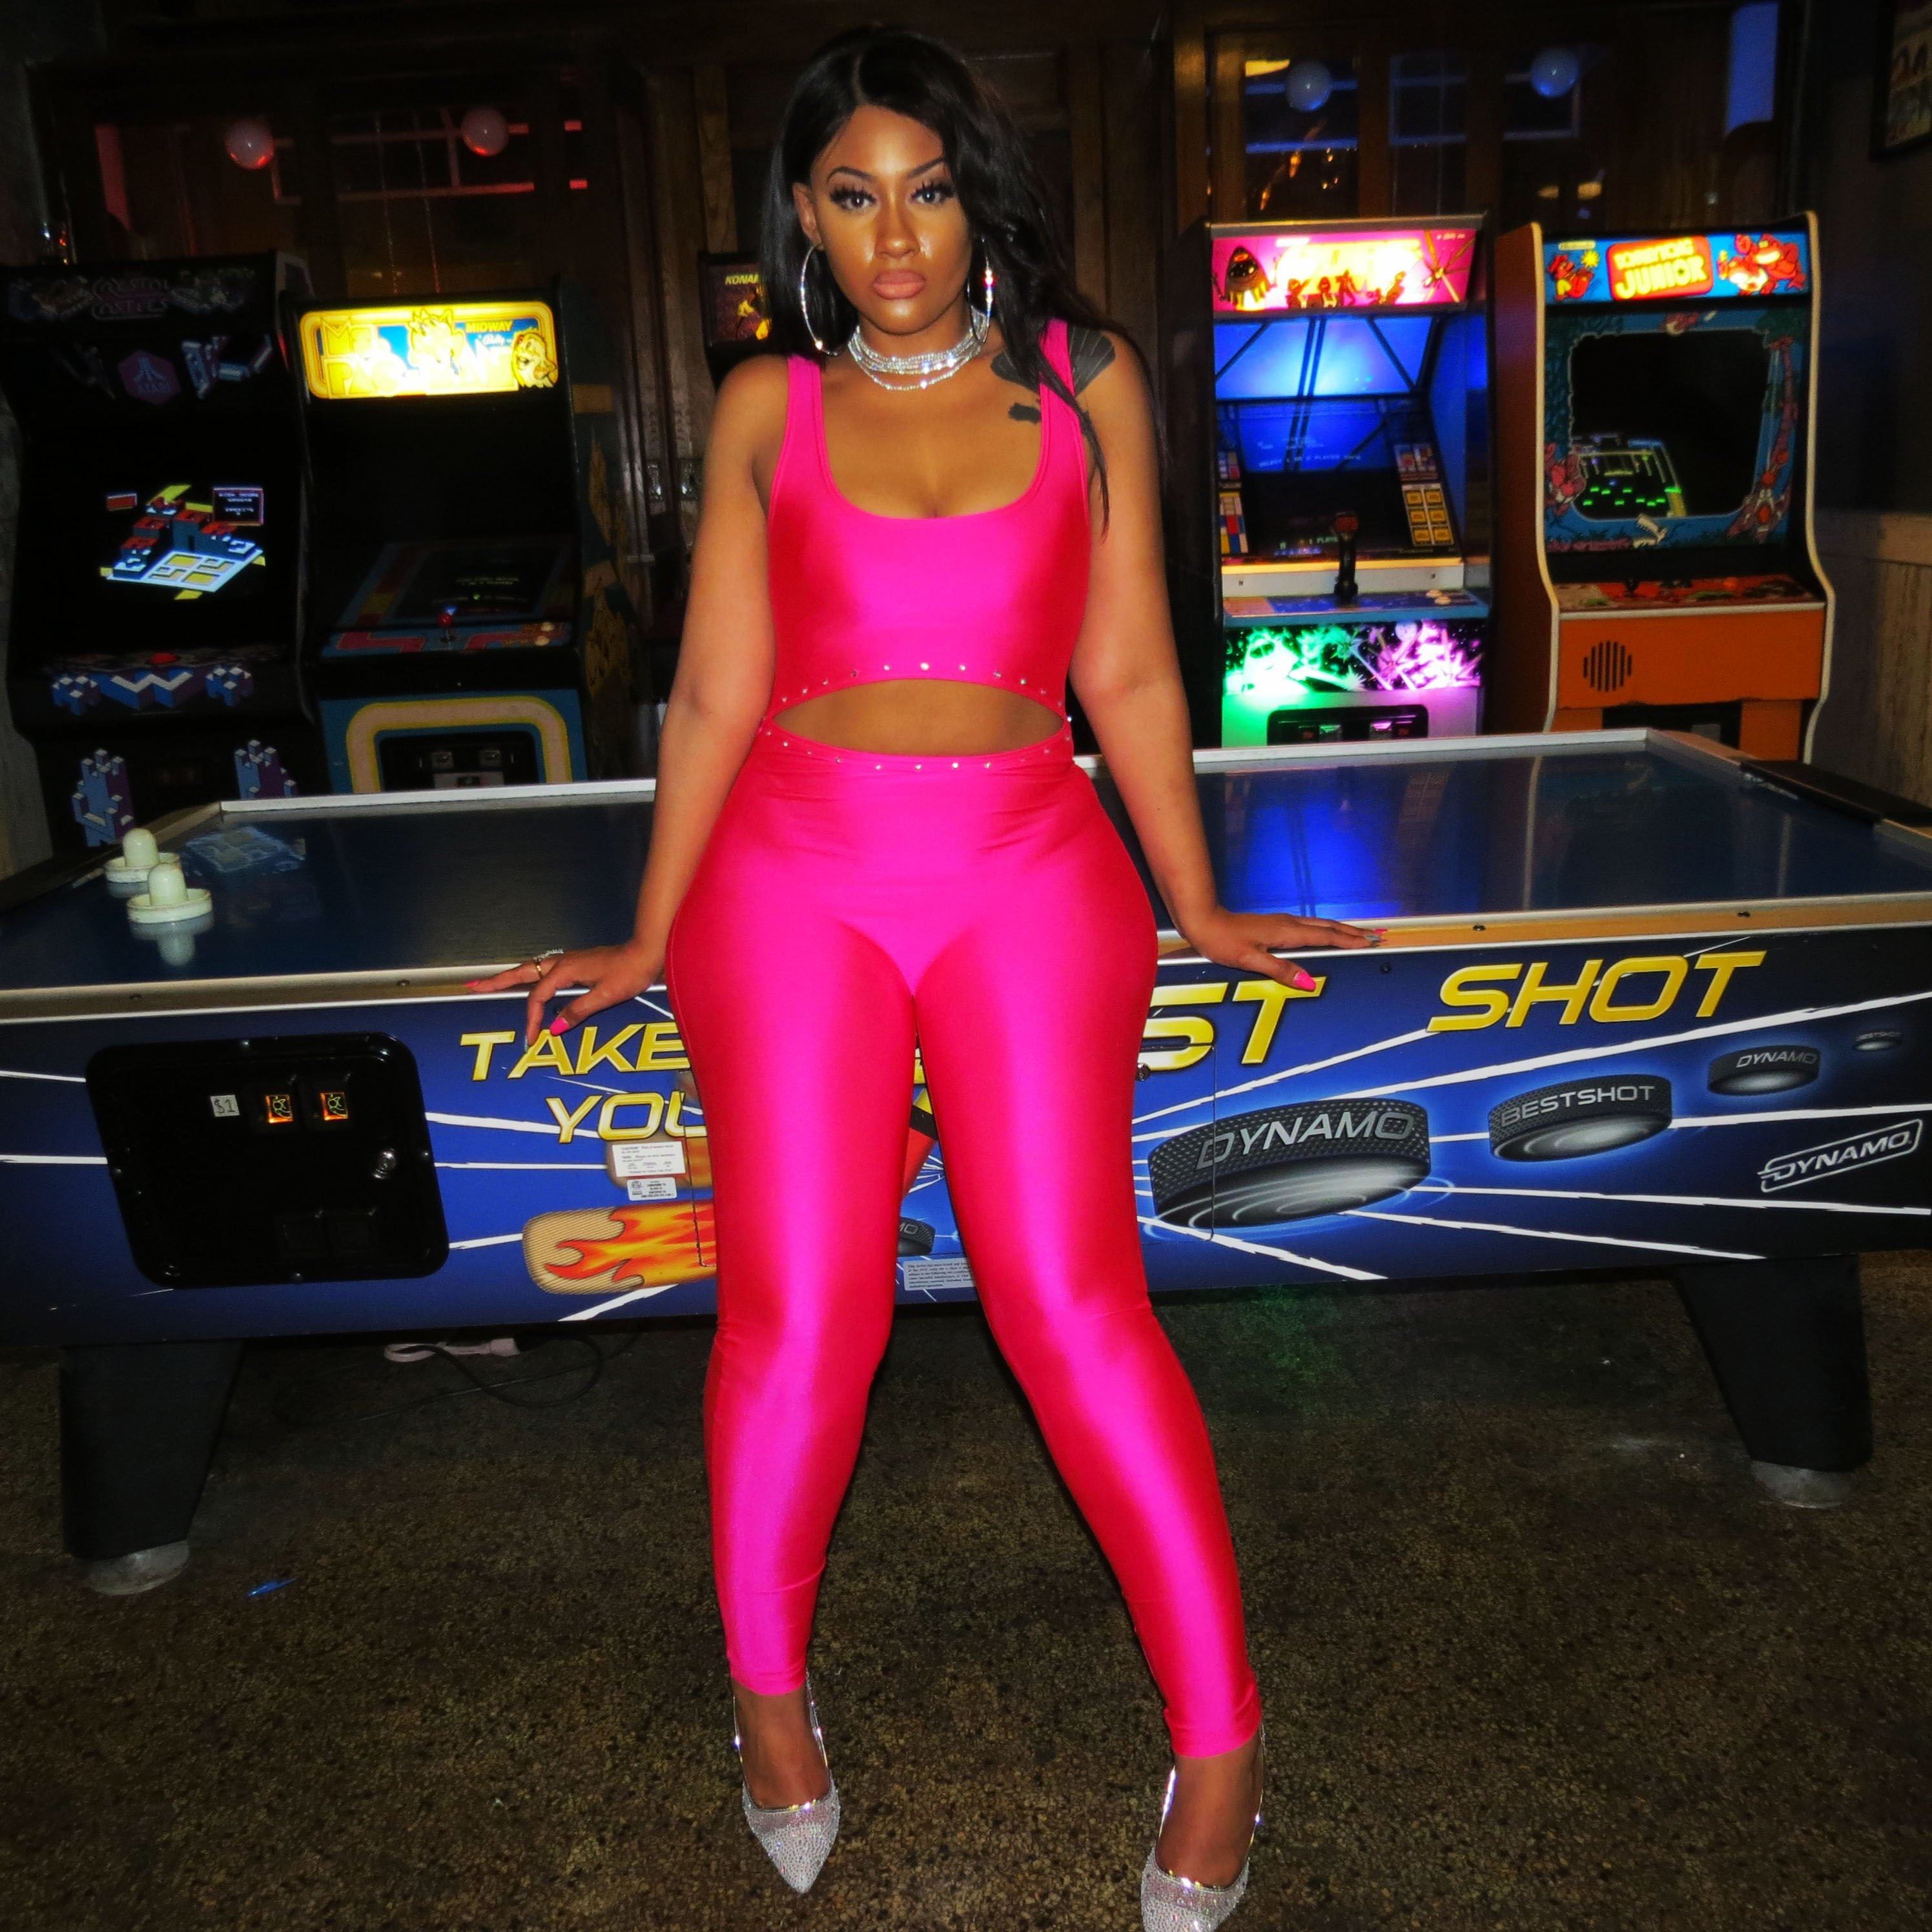 d9141689c3cd Friday Night Pink Neon Jumpsuit